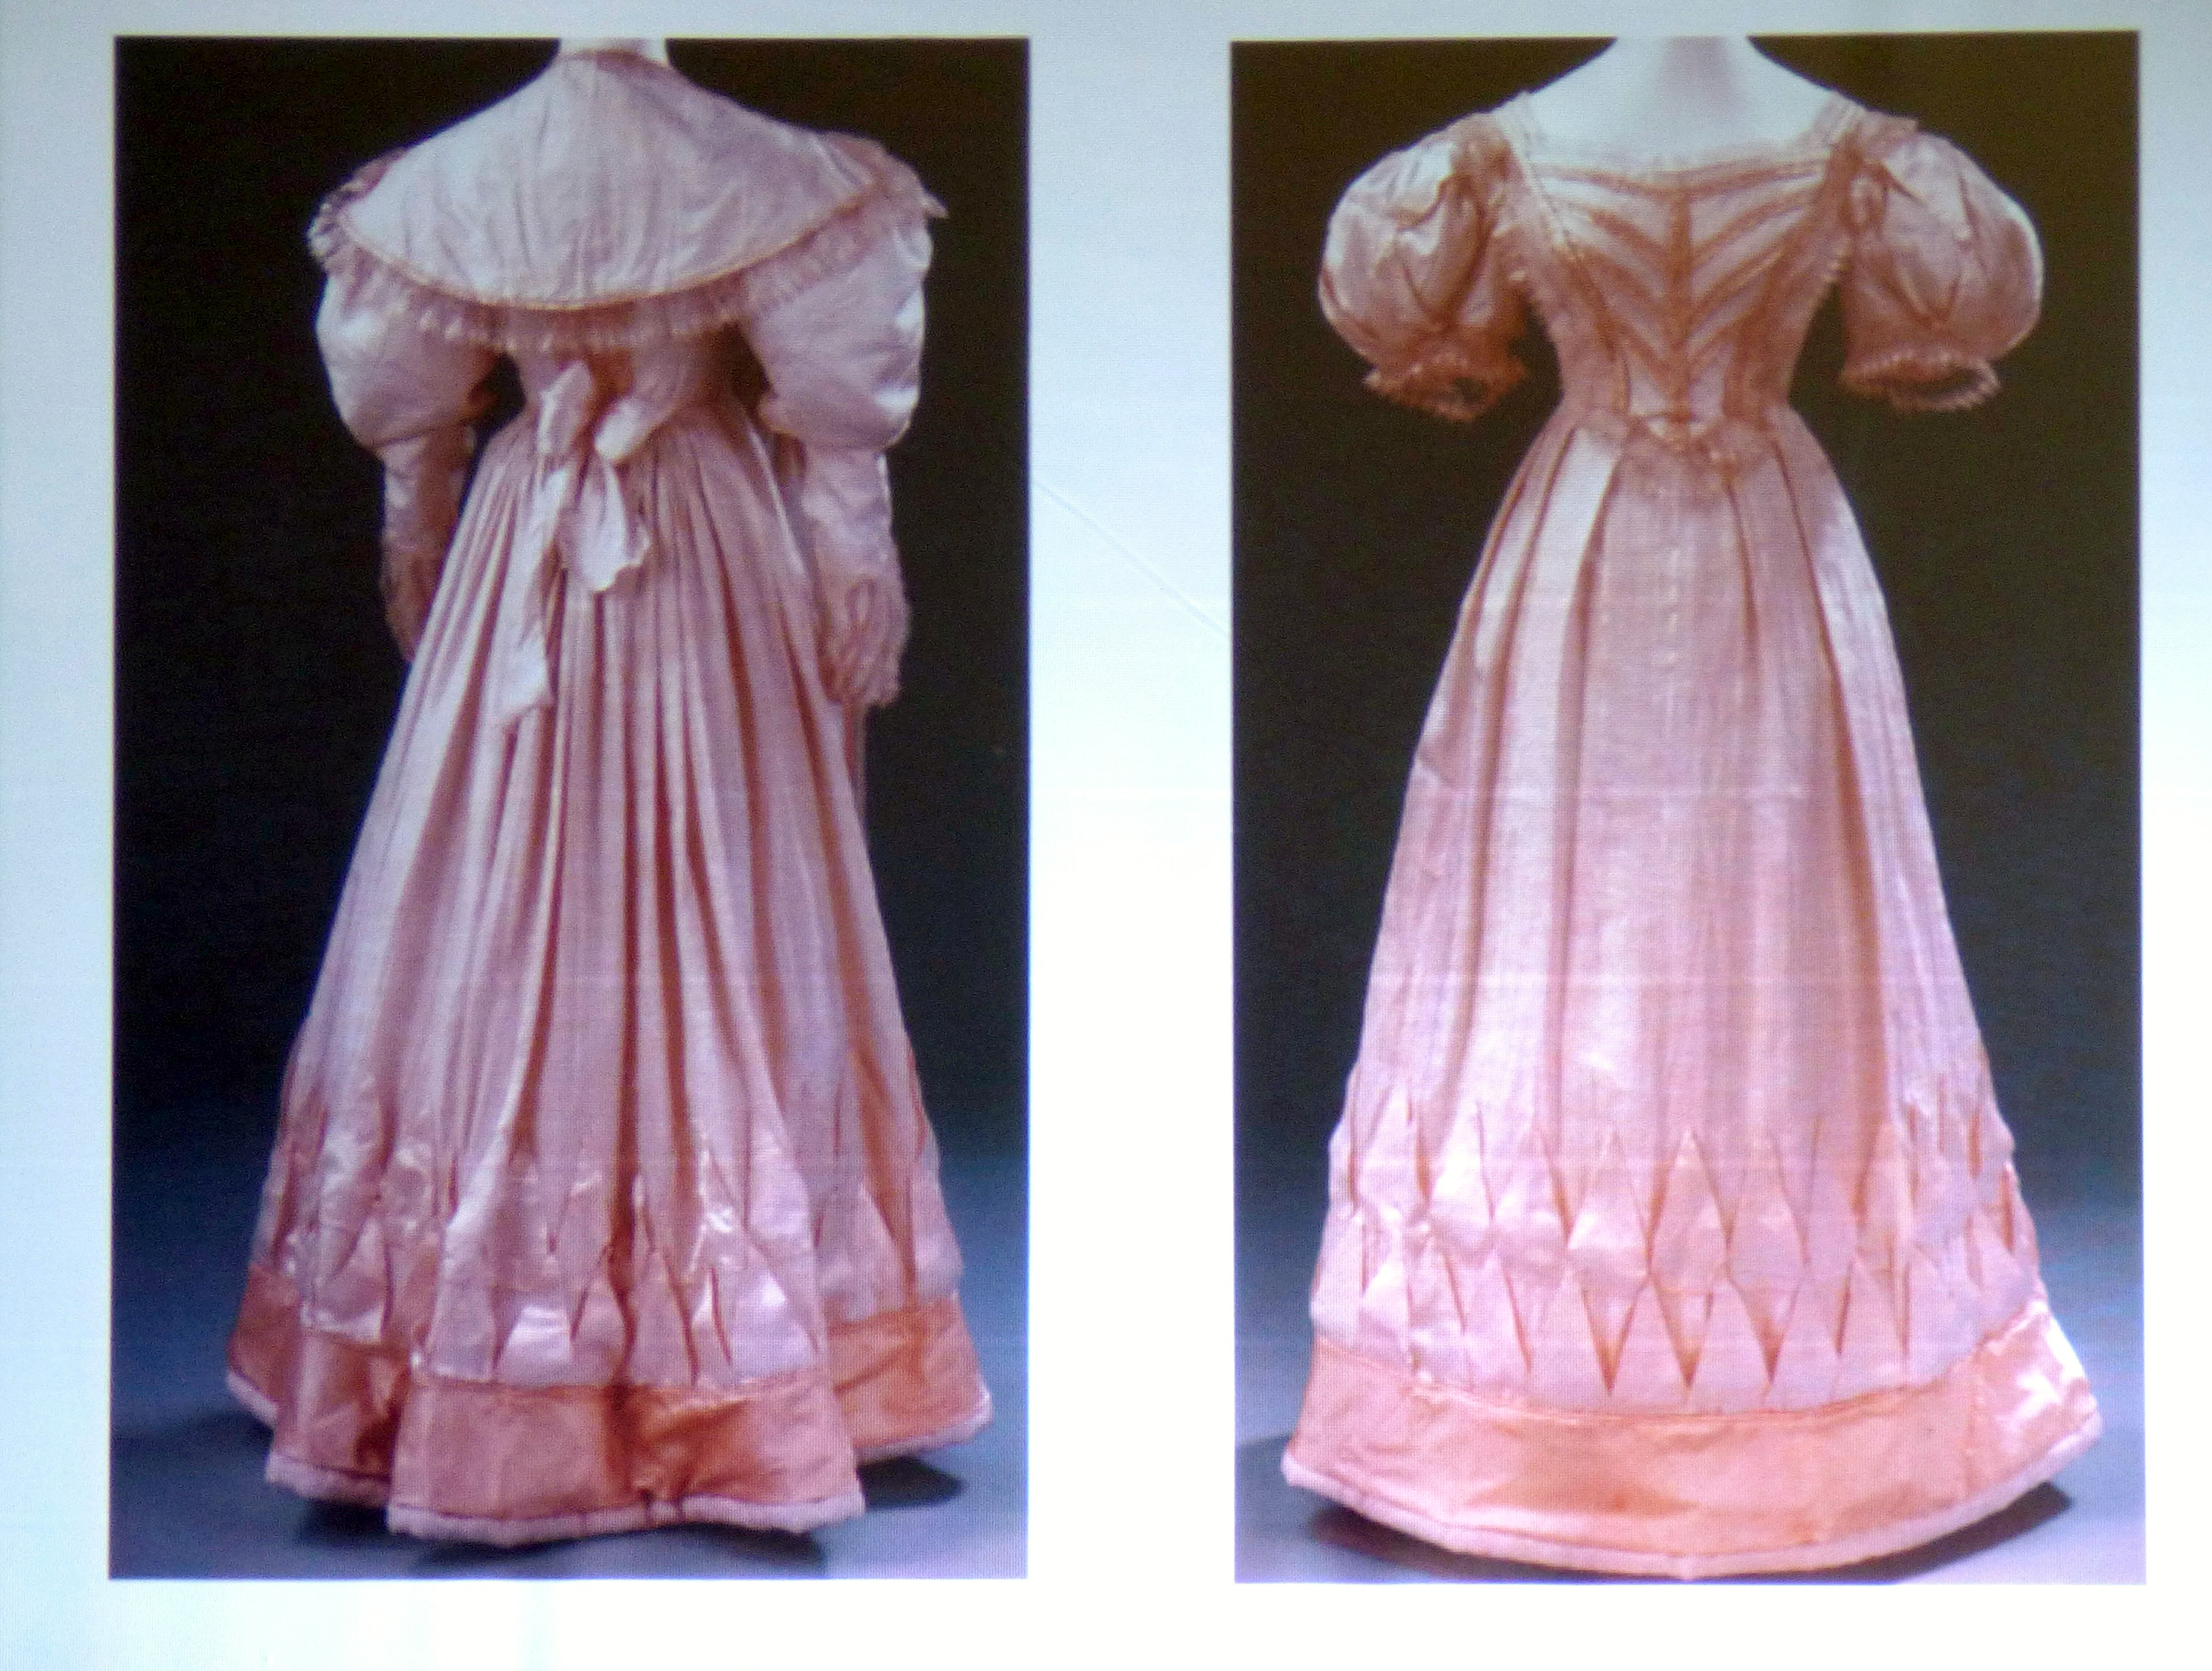 slide showing silk wedding dress, over-sleeves and pelerine 1823, History of the Wedding Dress talk by Gill Roberts, MEG 2018